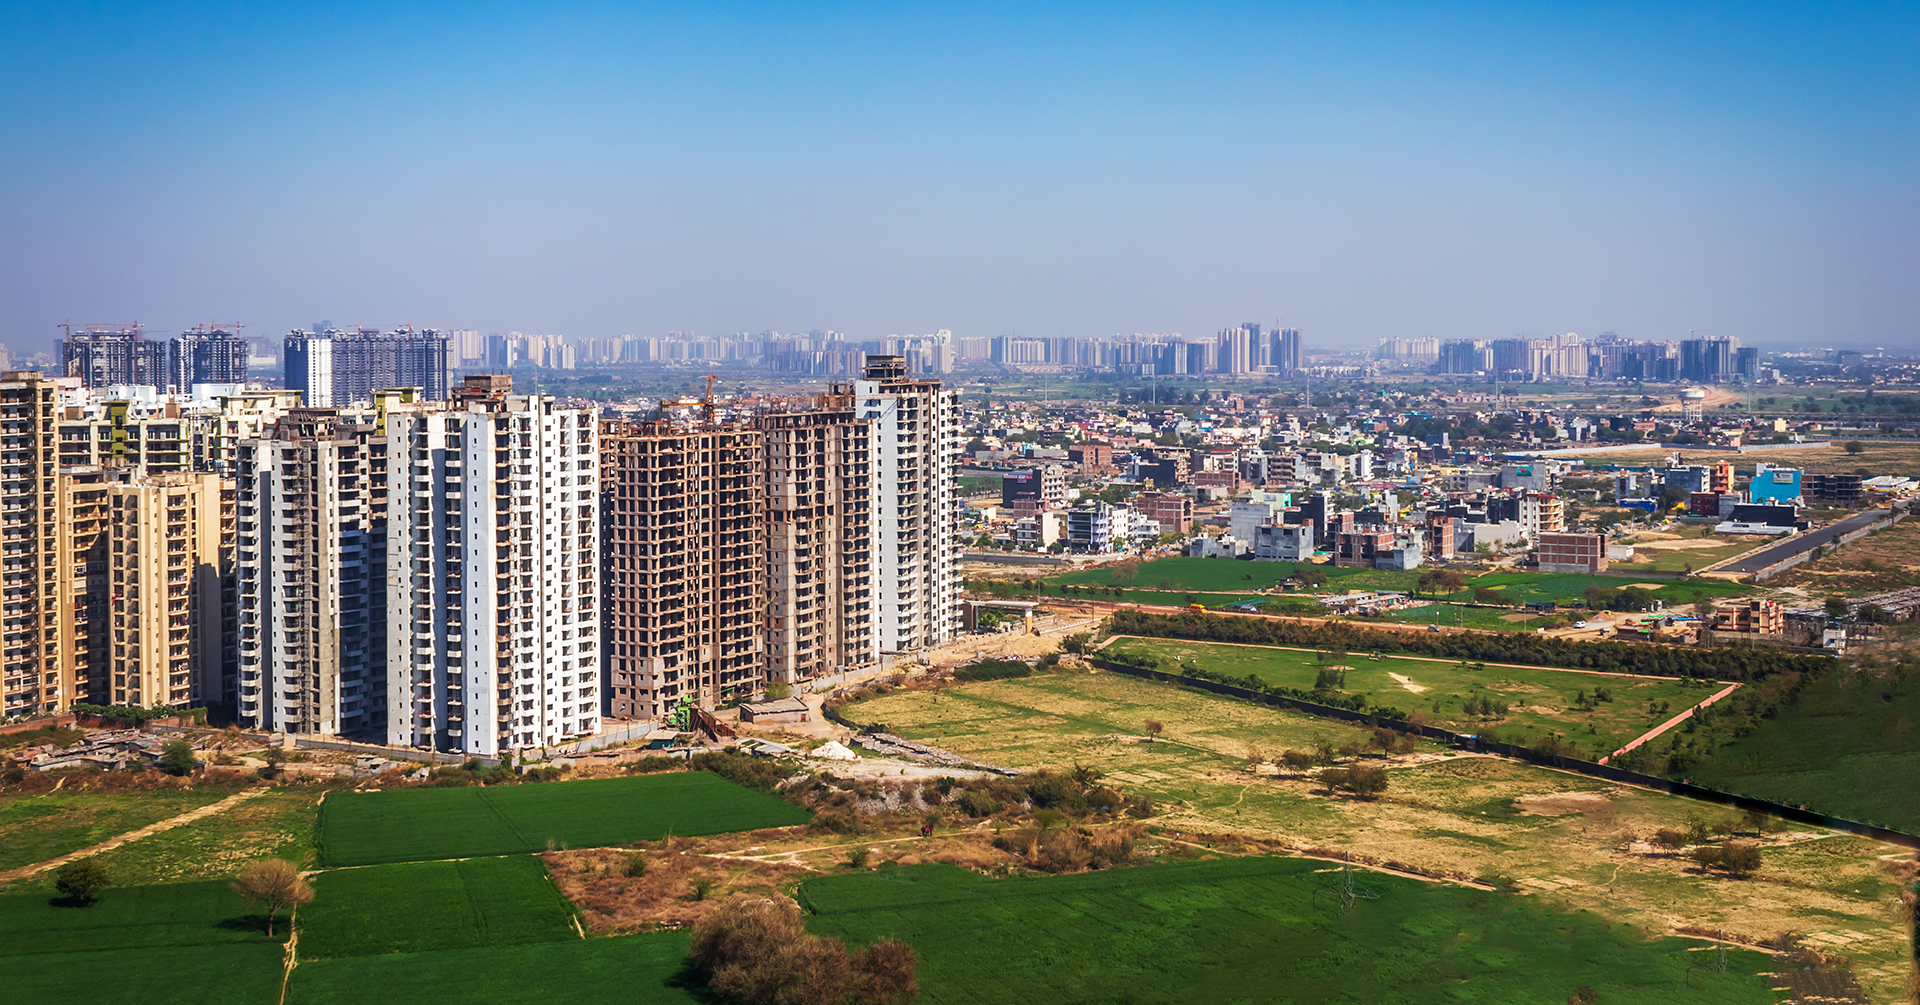 Growth In Real Estate Companies In Noida